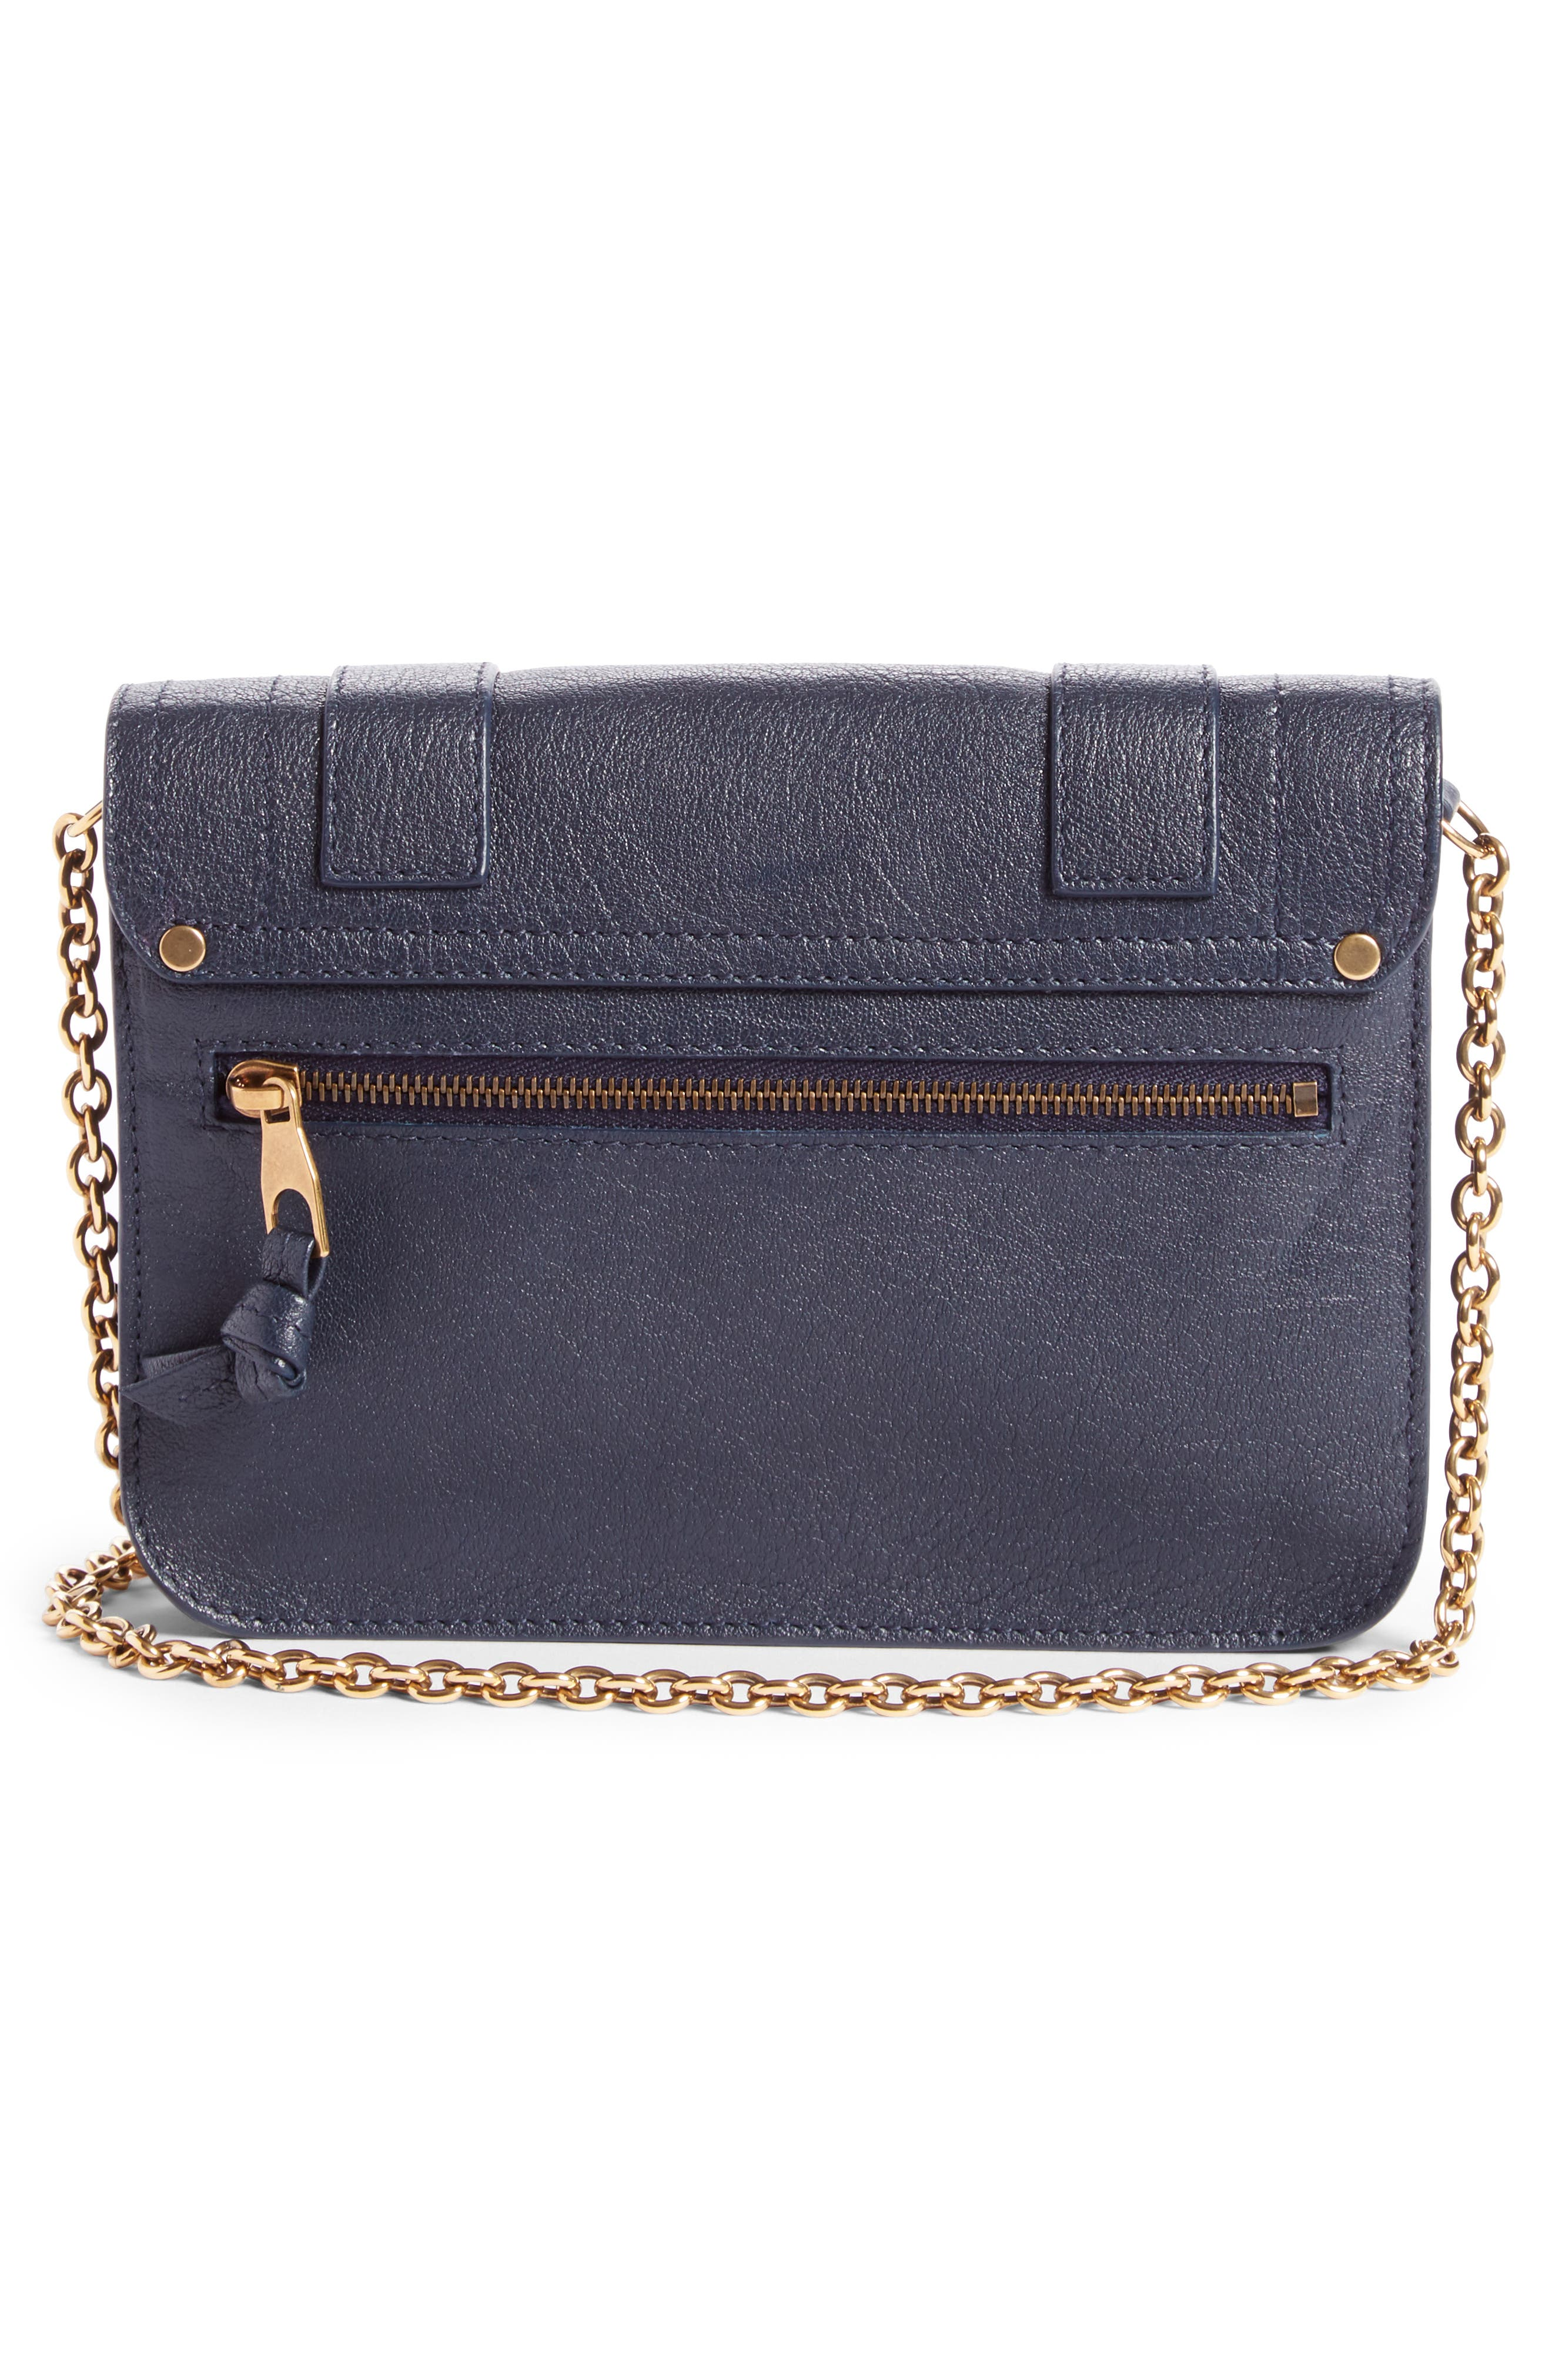 PS1 Lambskin Leather Chain Wallet,                             Alternate thumbnail 5, color,